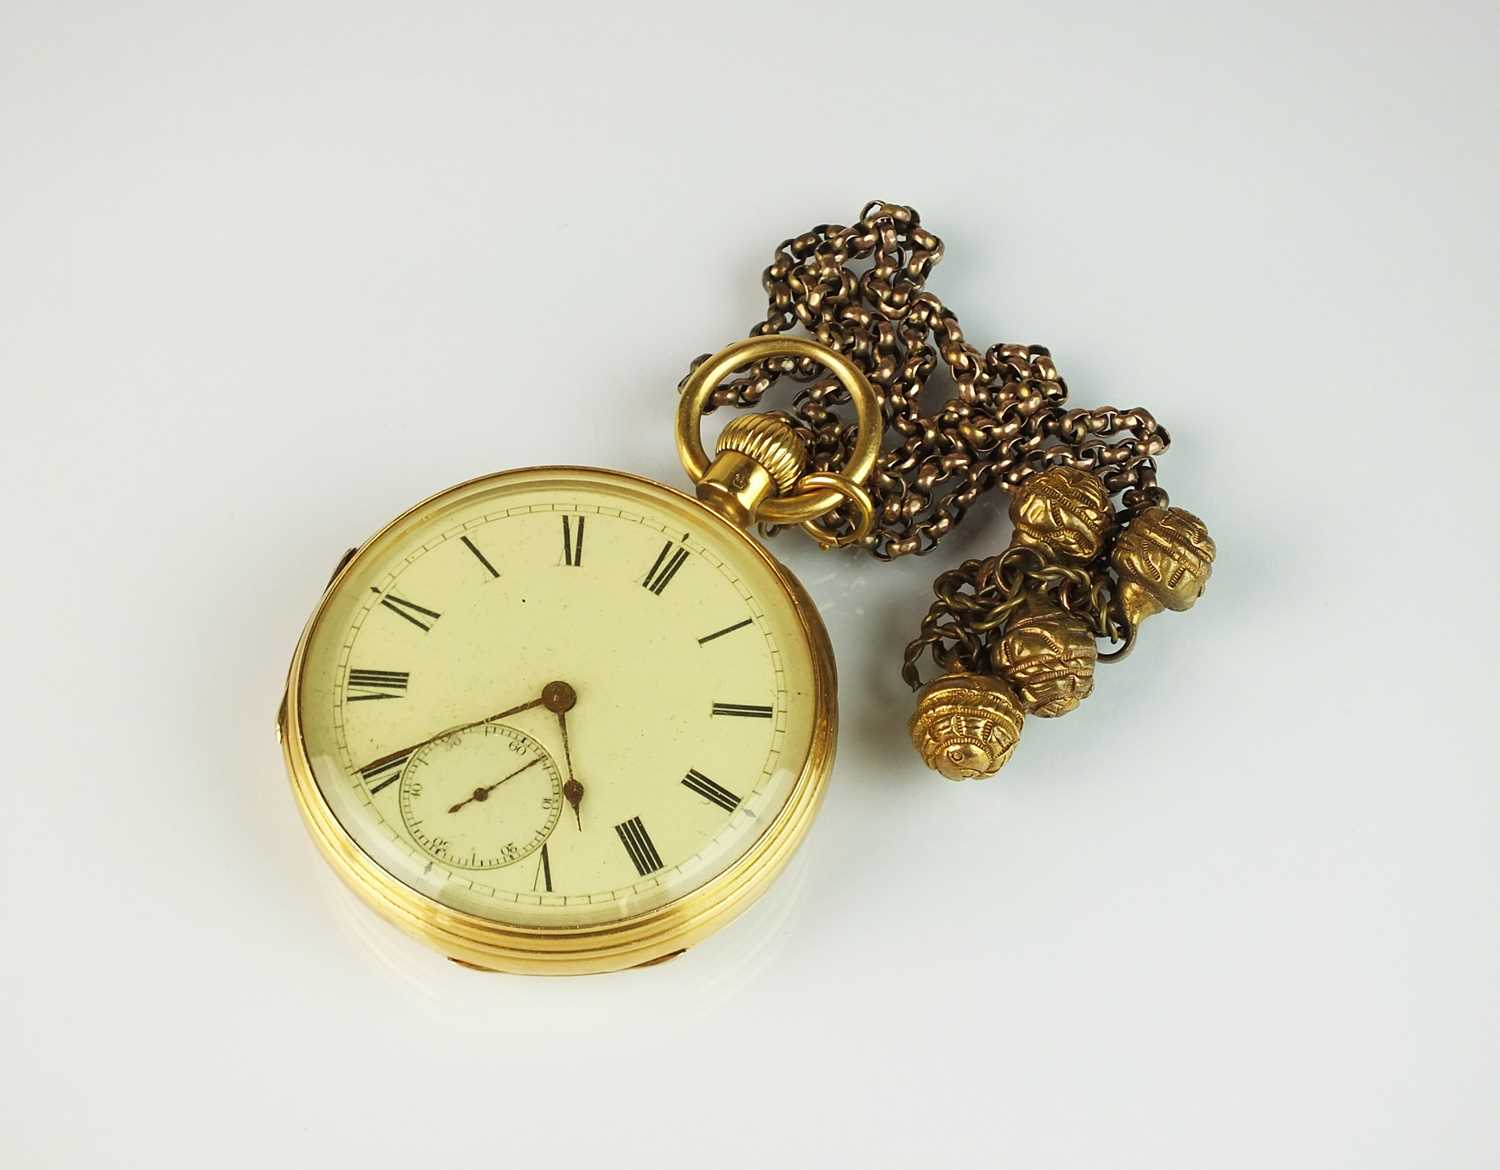 60 - A Gentleman's mid 19th century 18ct gold open face pocket watch